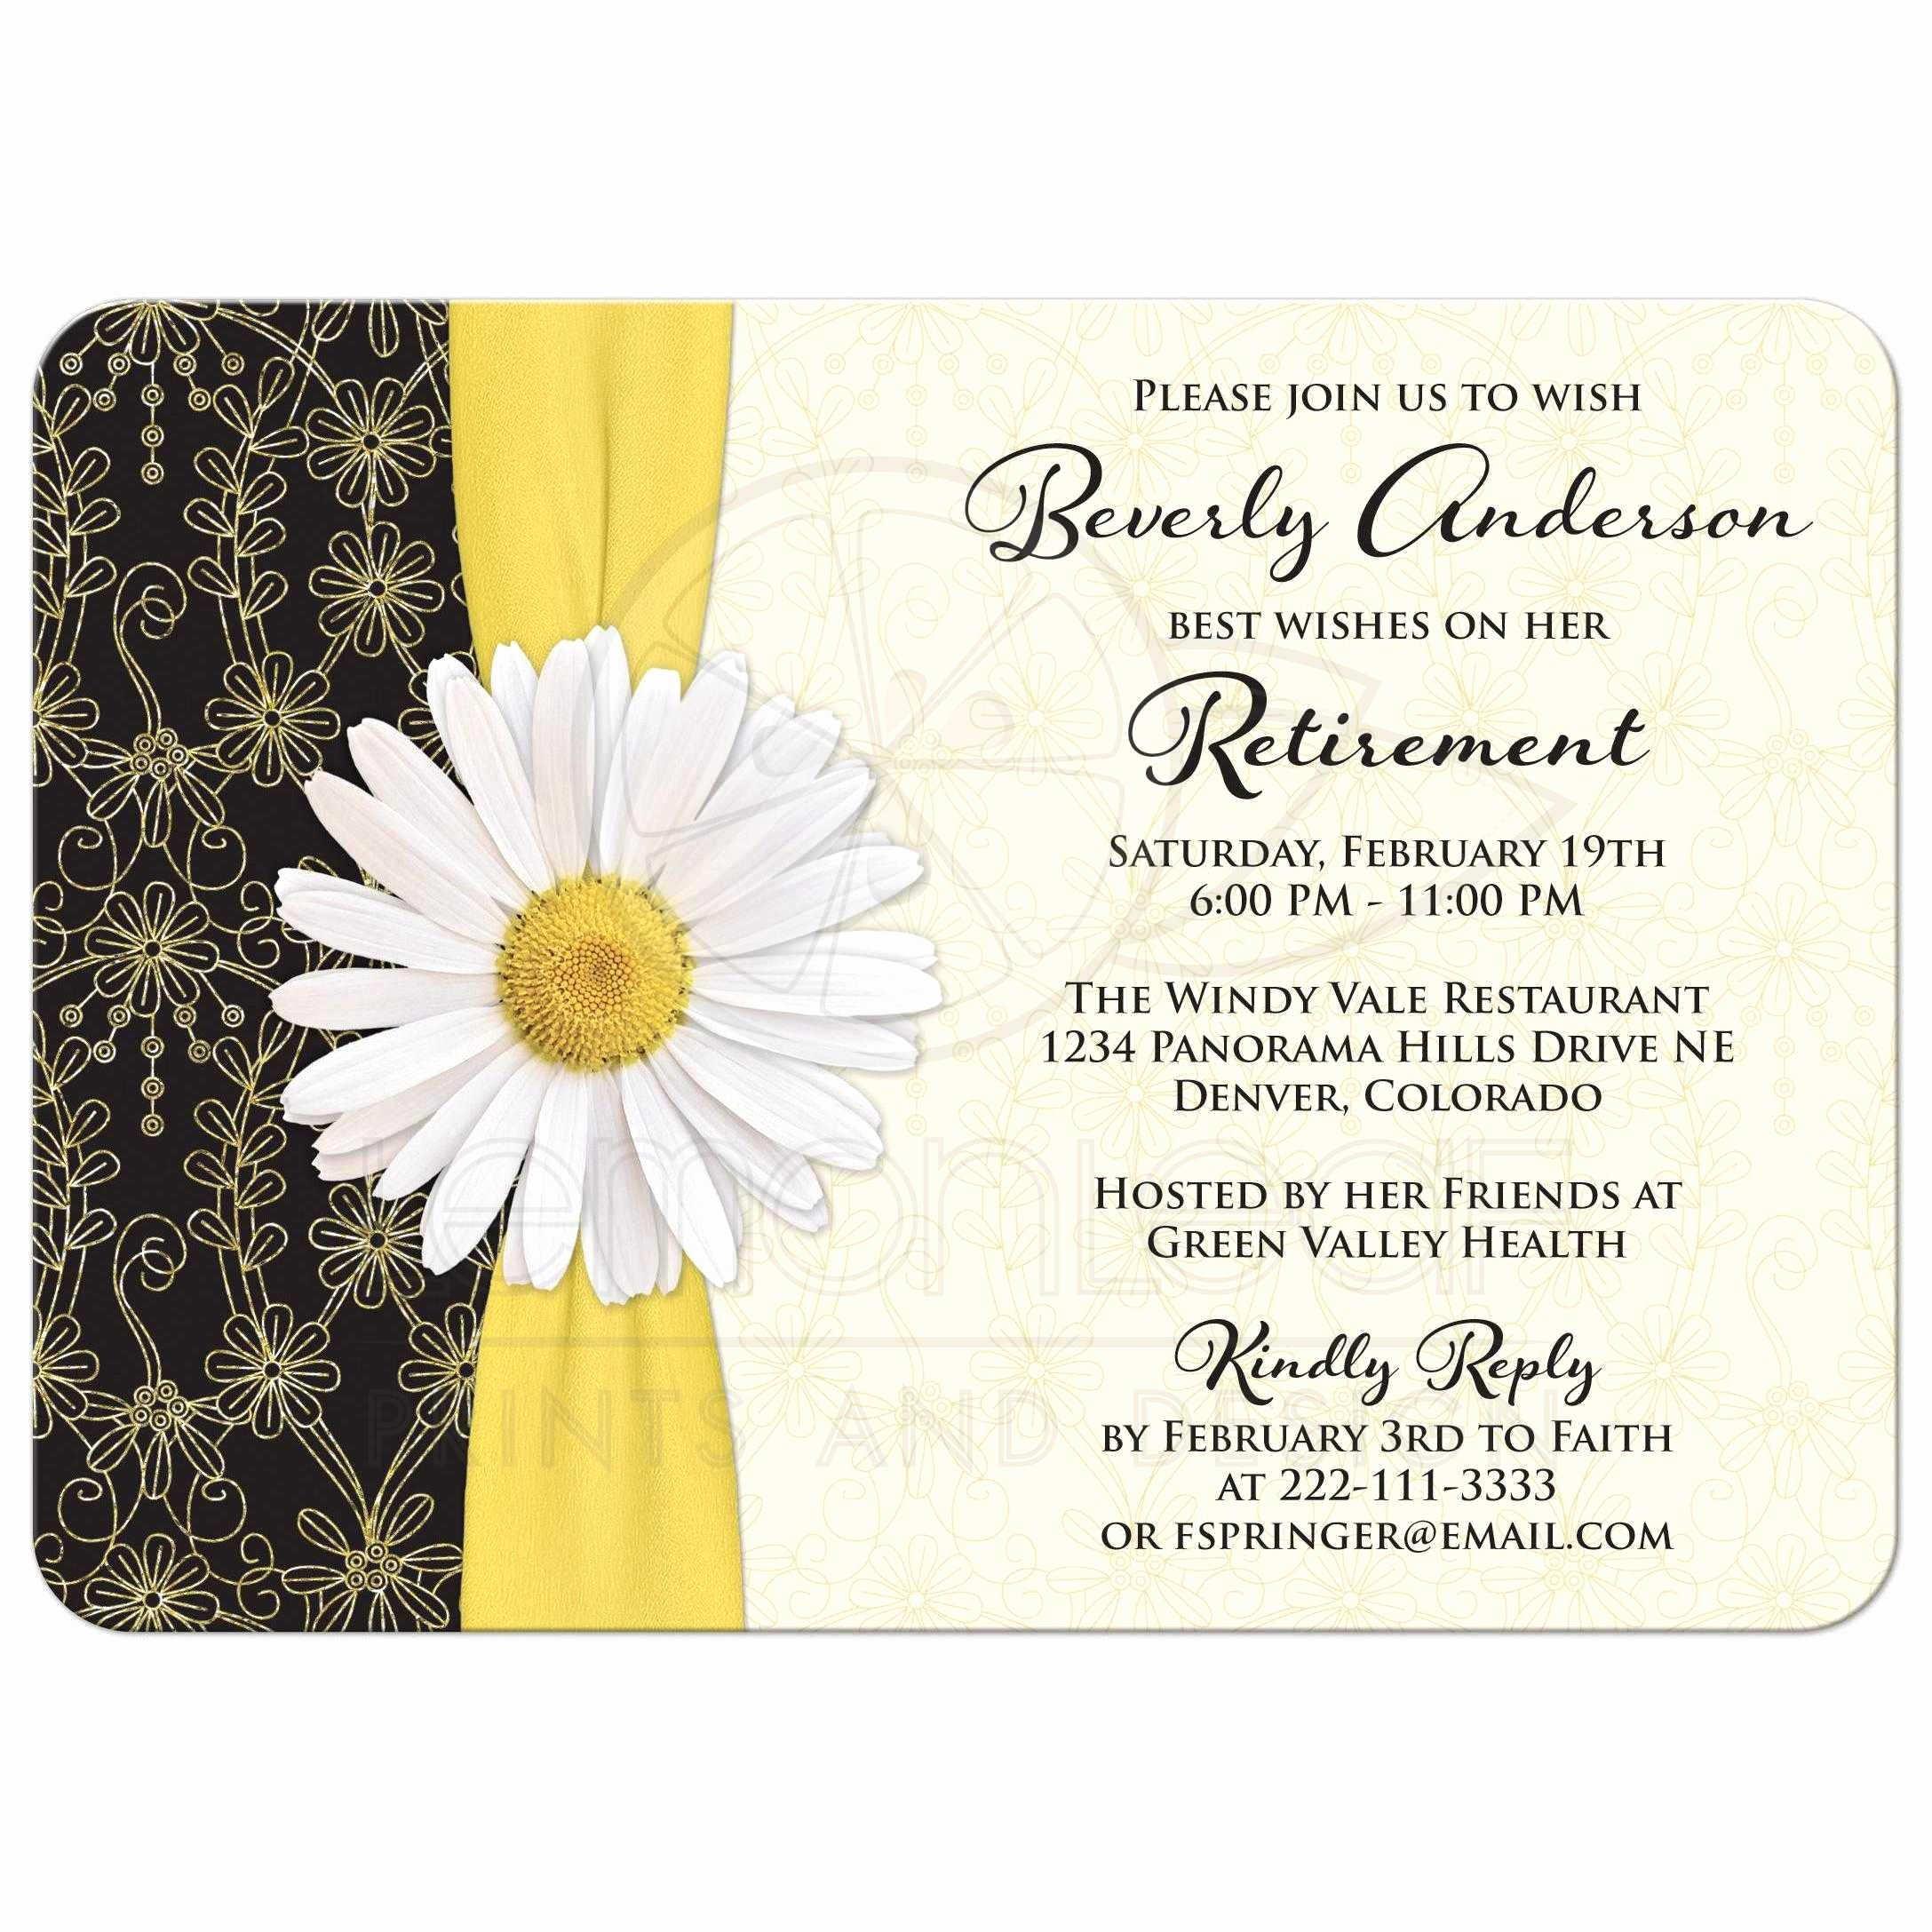 Retirement Party Invites Template Inspirational Retirement Party Invitation Wording